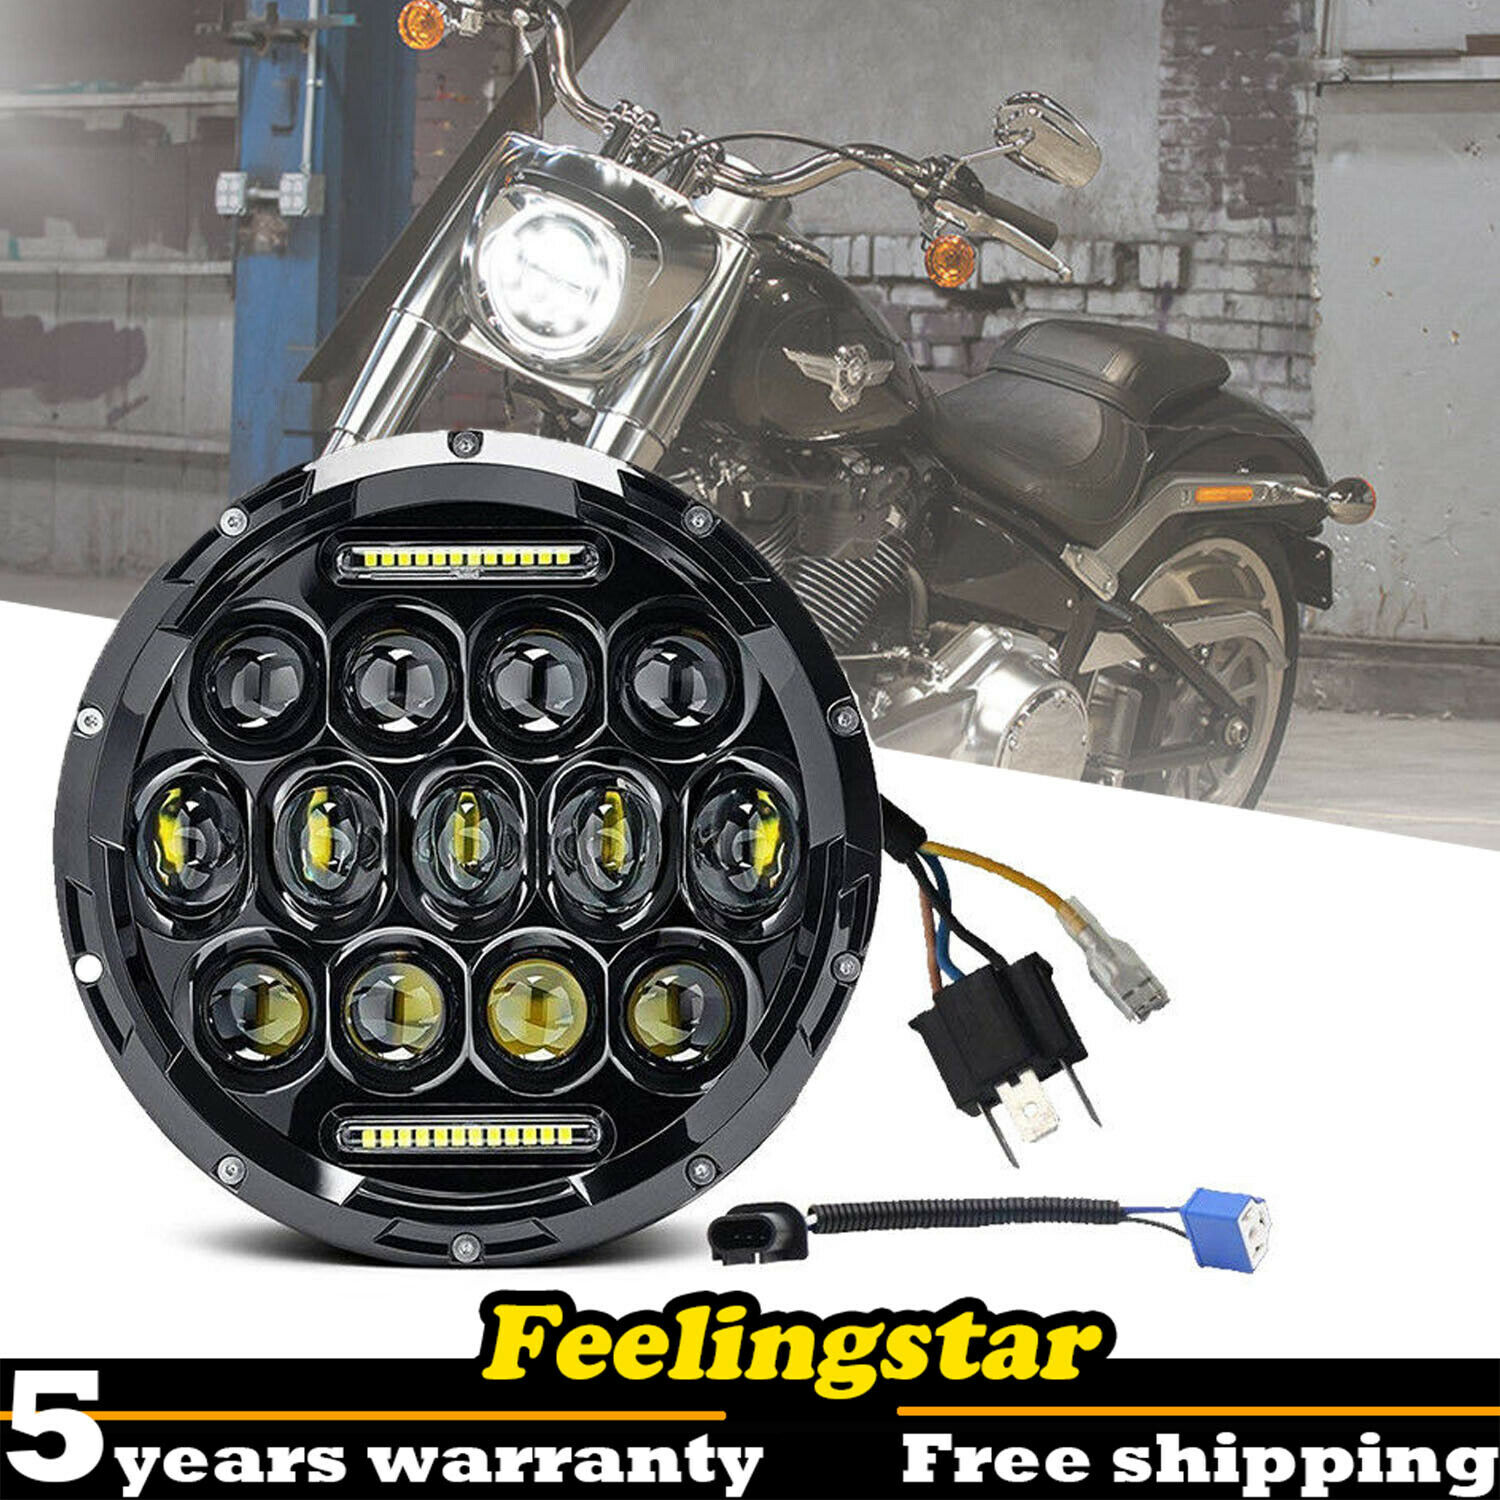 Black 7 Inch 75W Round Daymaker LED Projector Headlight Waterproof Bulb for Harley Motorcycle Jeep Wrangler JK CJ TJ